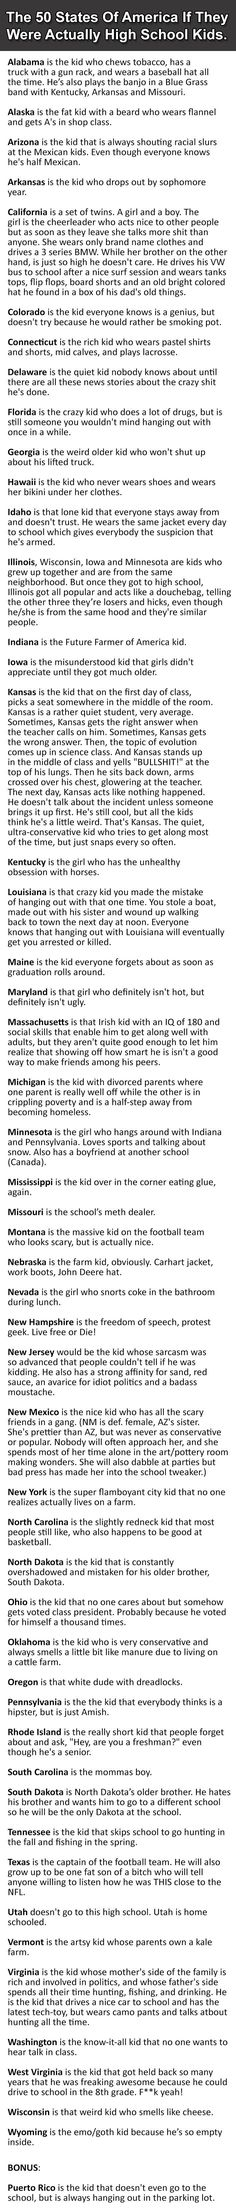 The 50 states of America if they were different kids at the same high school